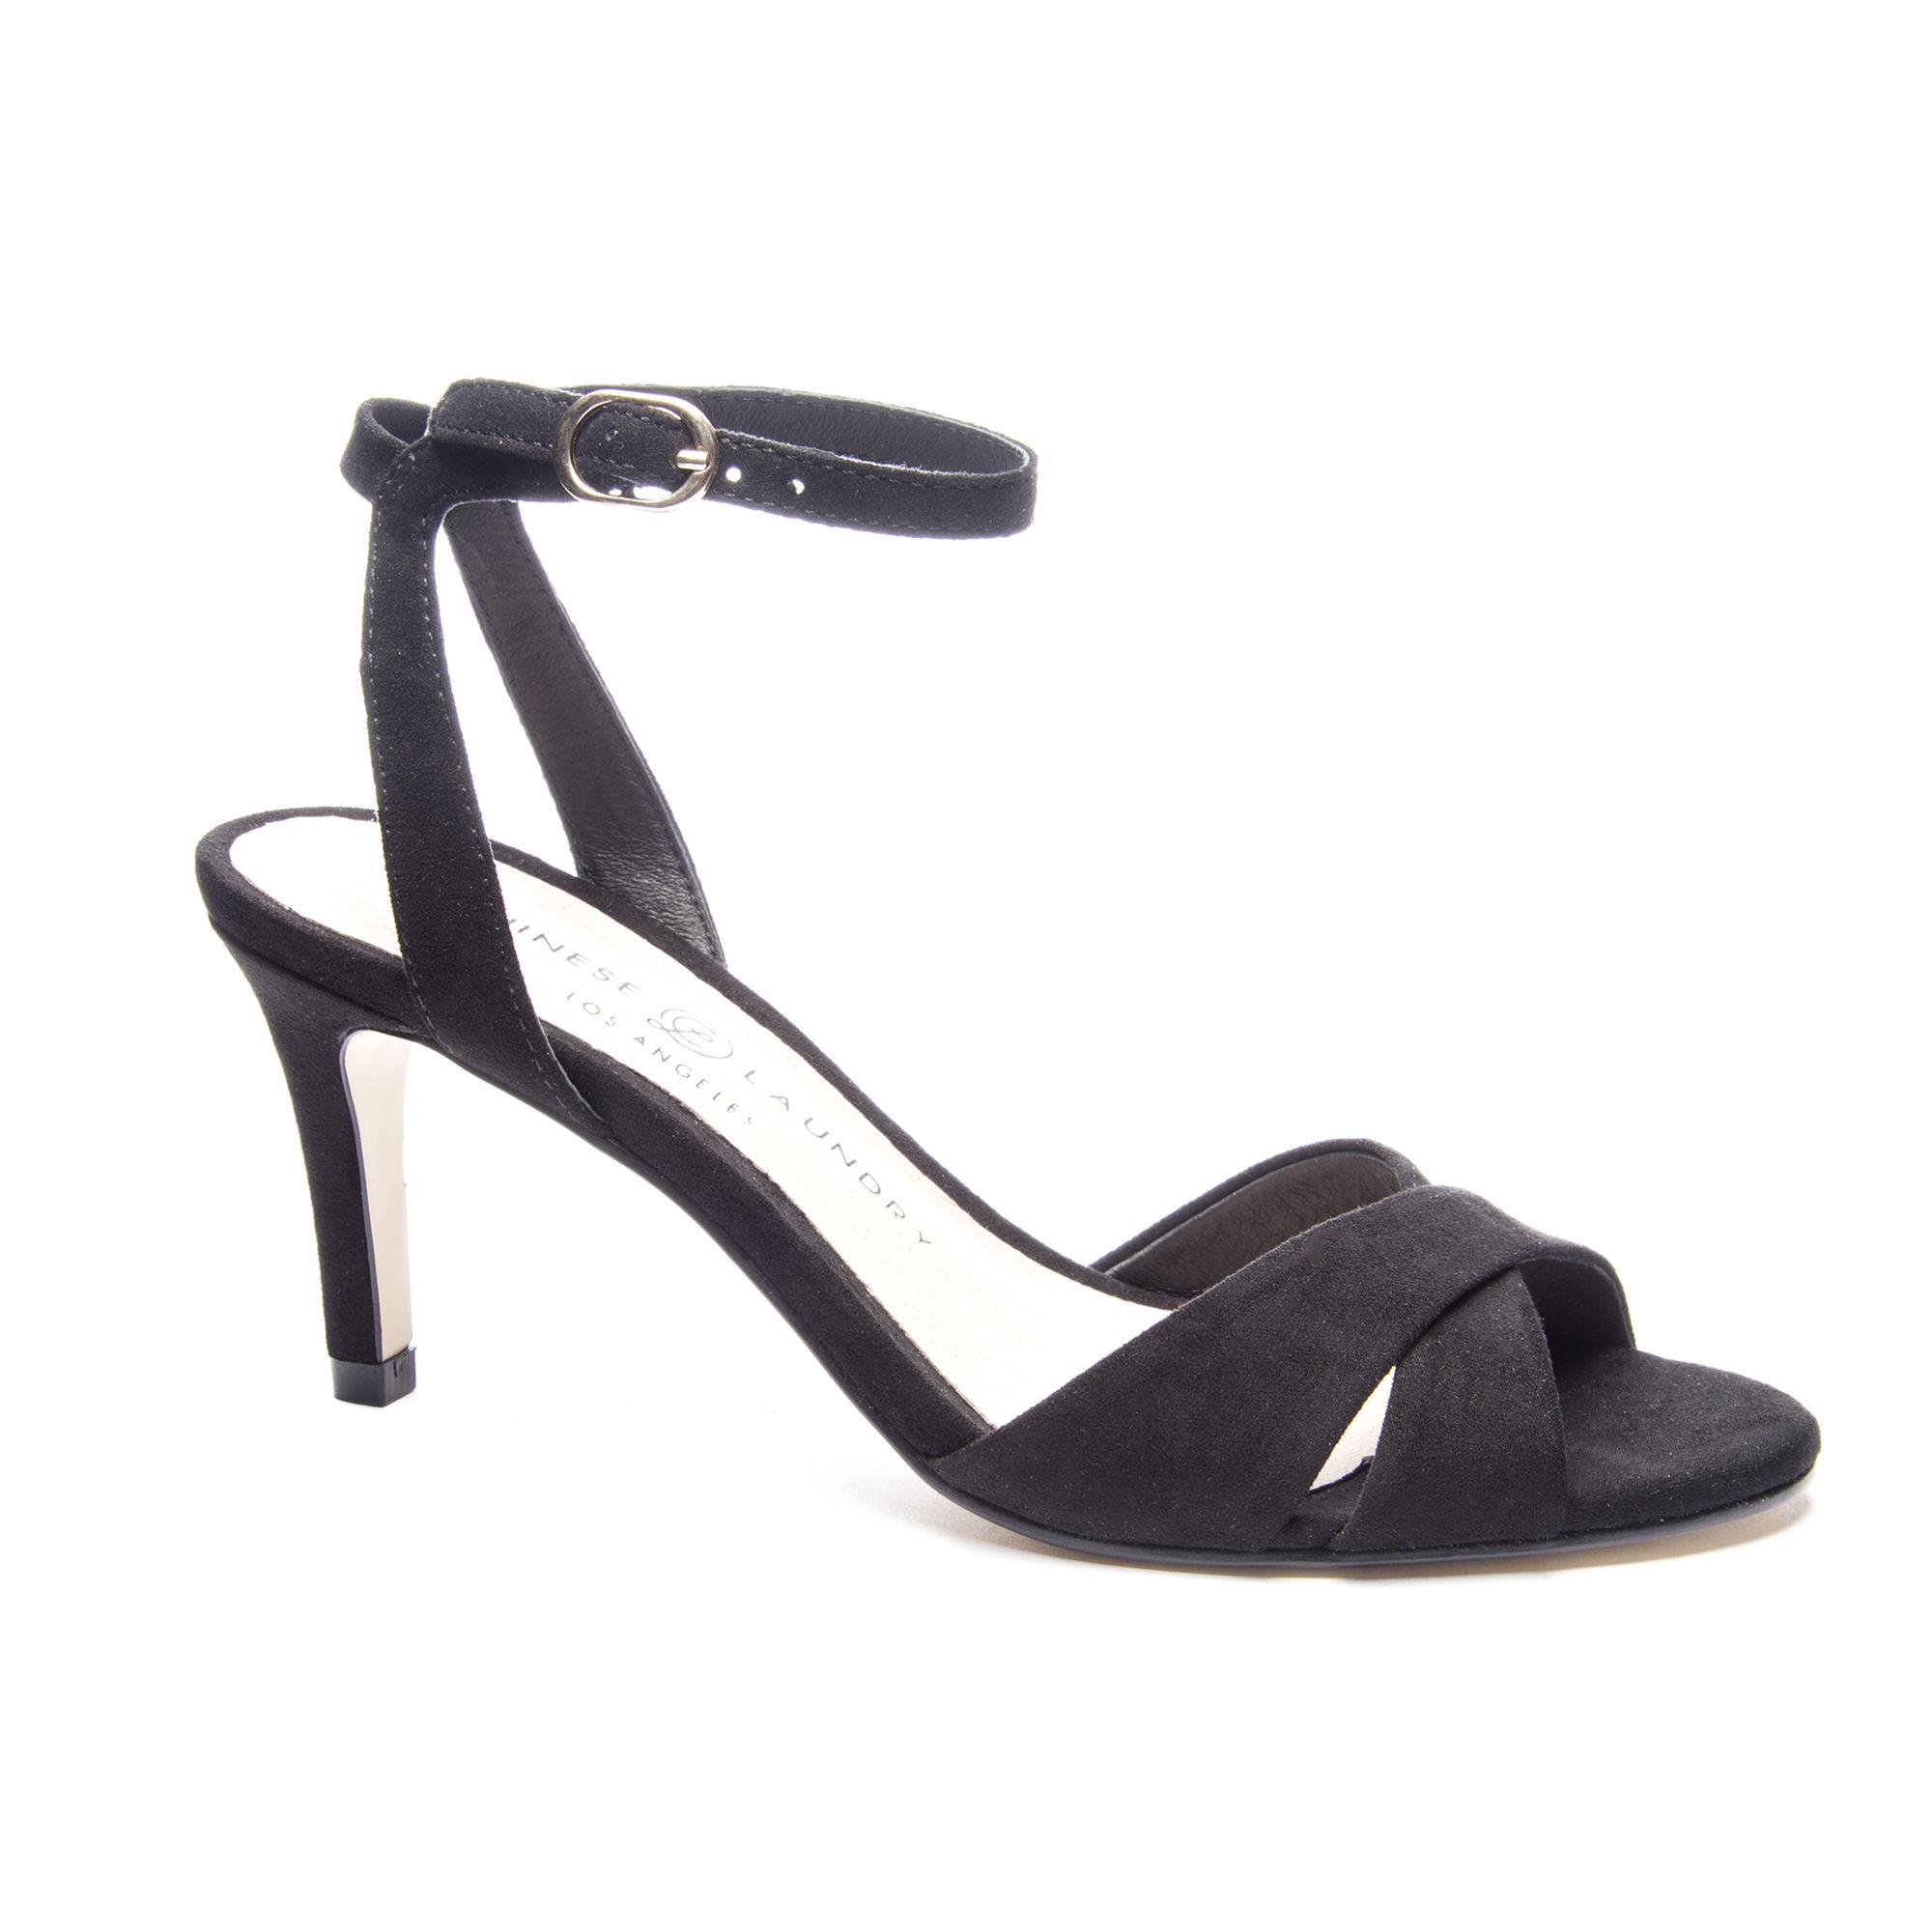 8fb1f76abff6 Lyst - Chinese Laundry Rosita Ankle Strap Sandal in Black